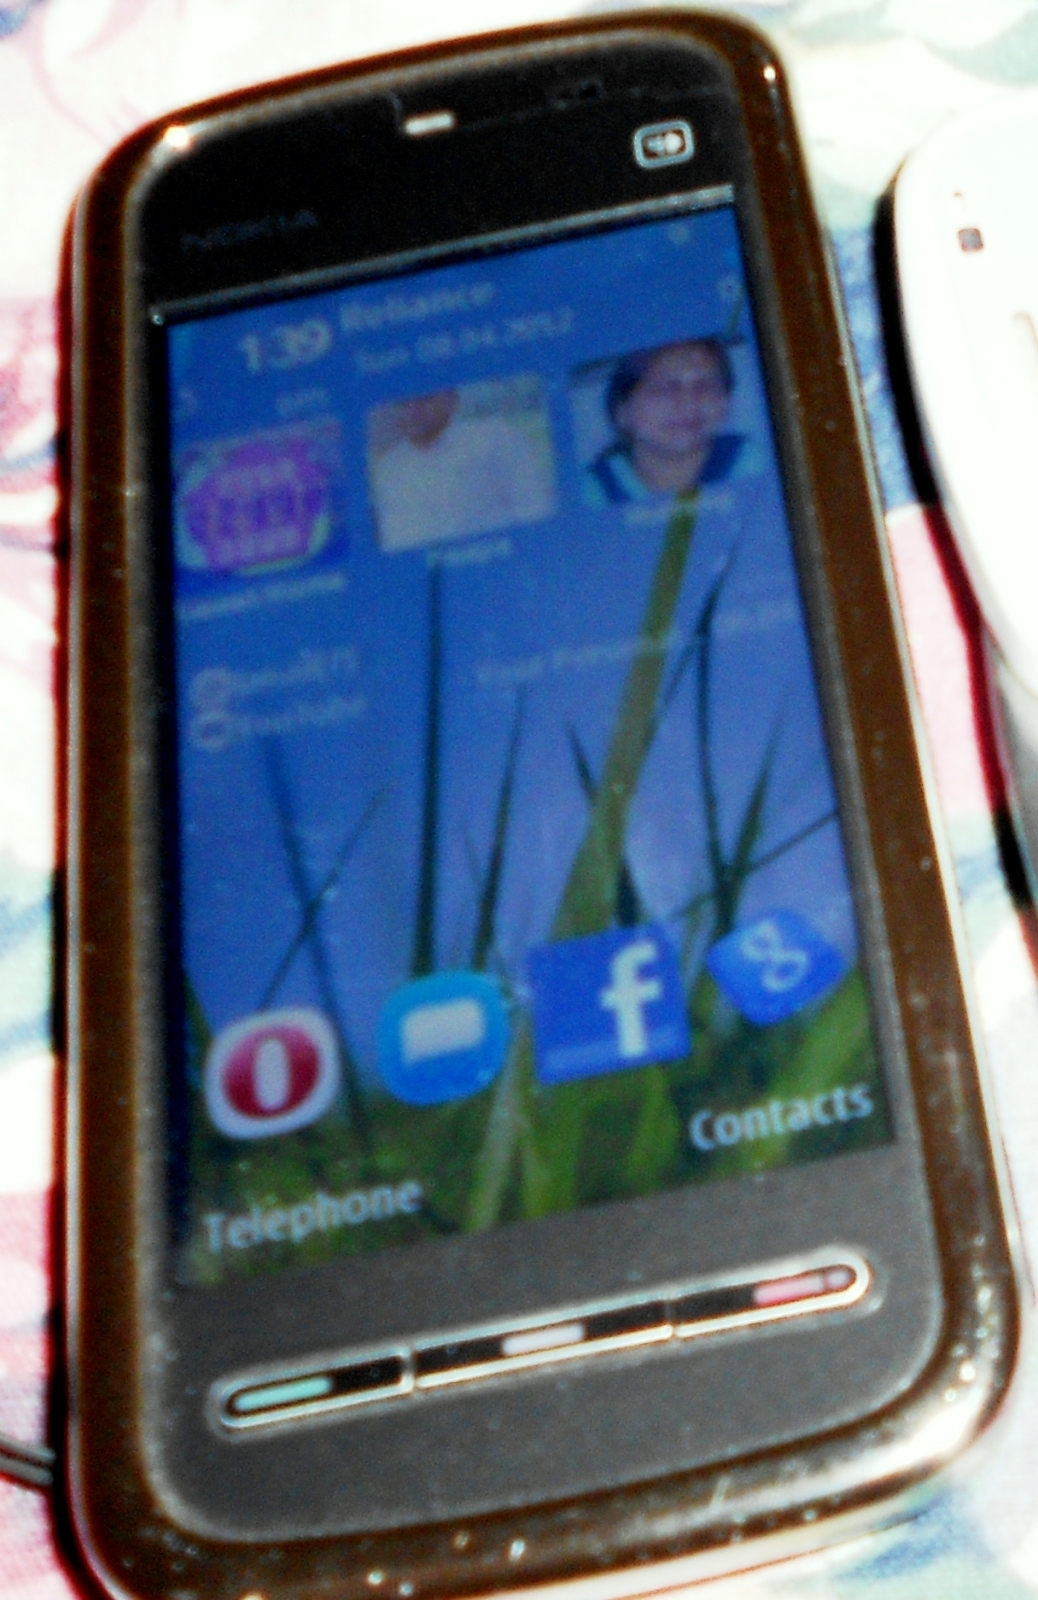 Nokia 5233 whatsapp latest version download   I want to